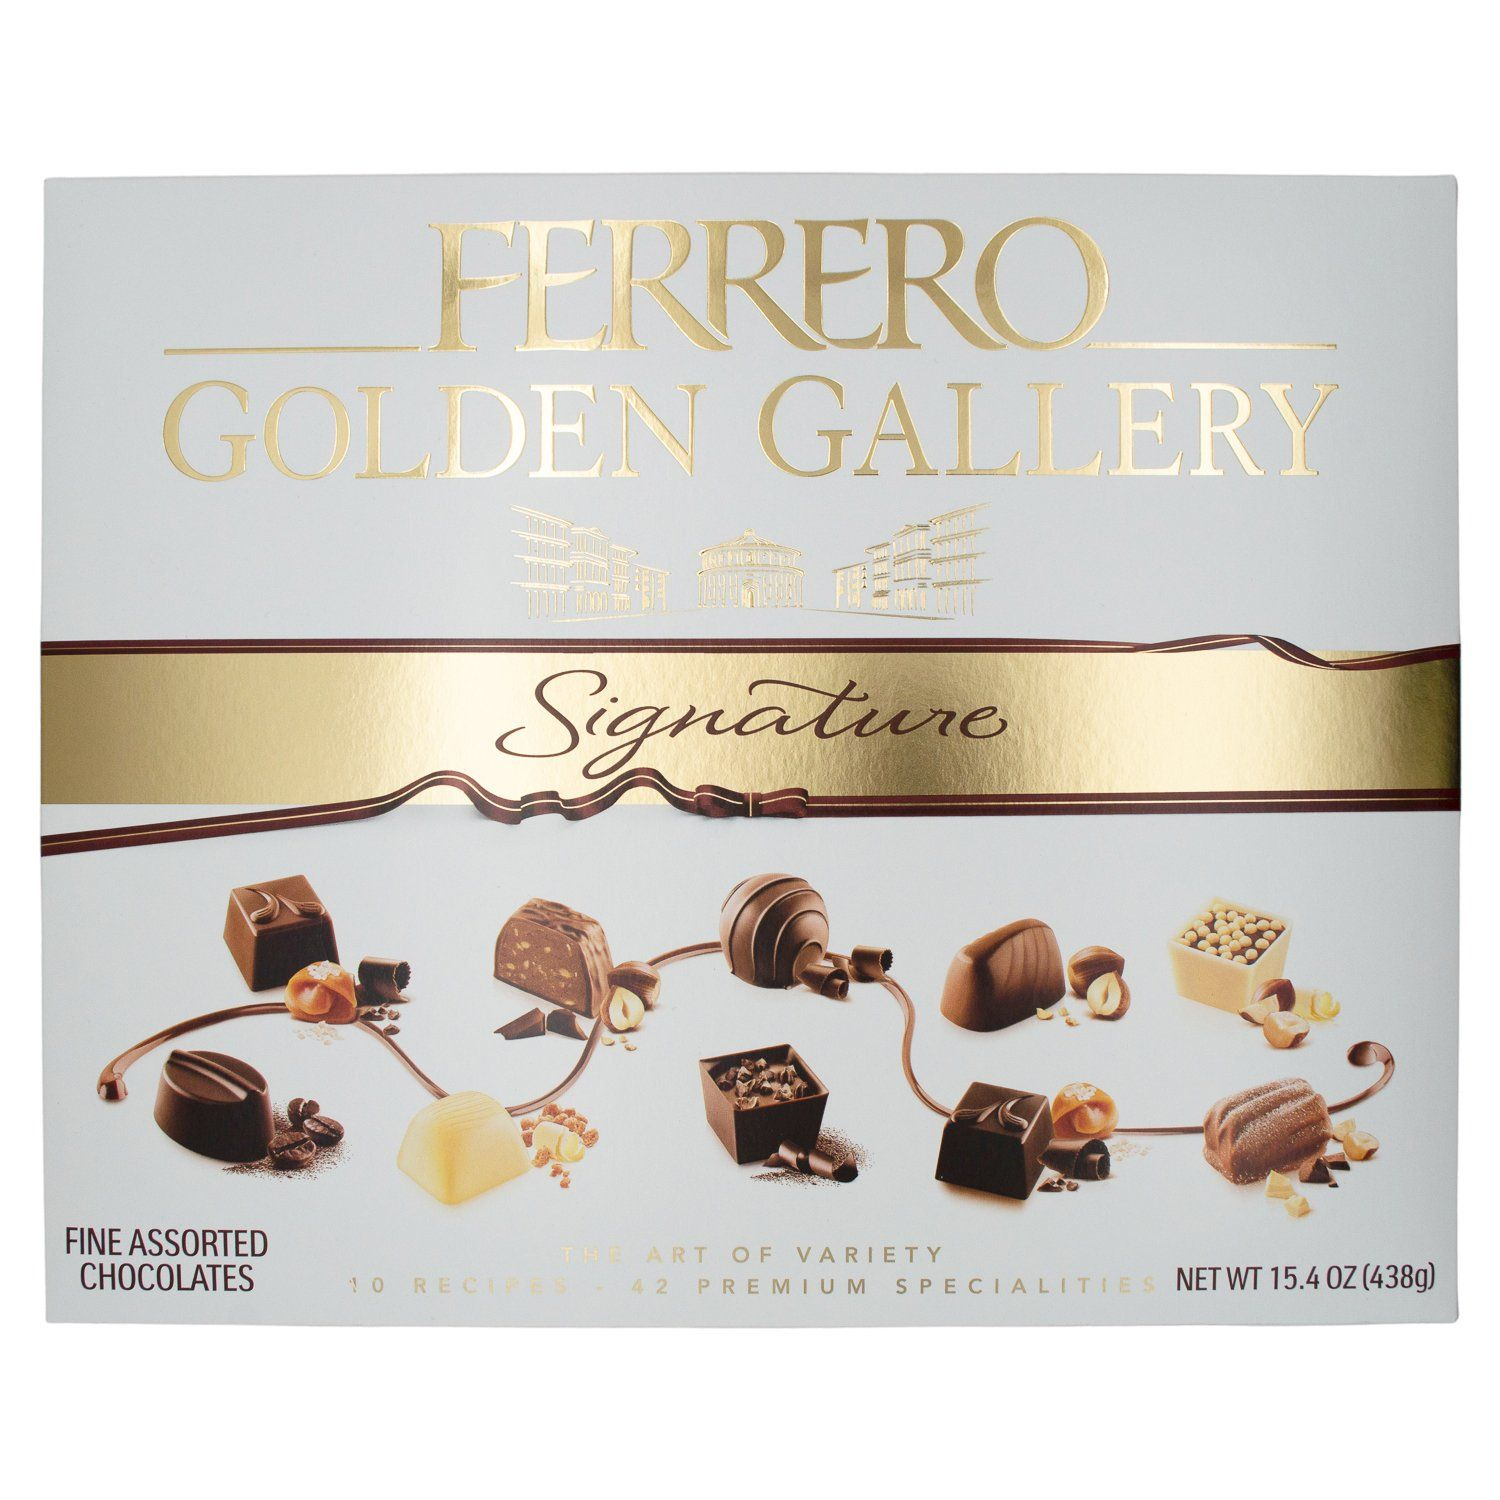 Ferrerro Golden Gallery Signature Fine Assorted Chocolates Meltable Ferrero 15.4 Ounce